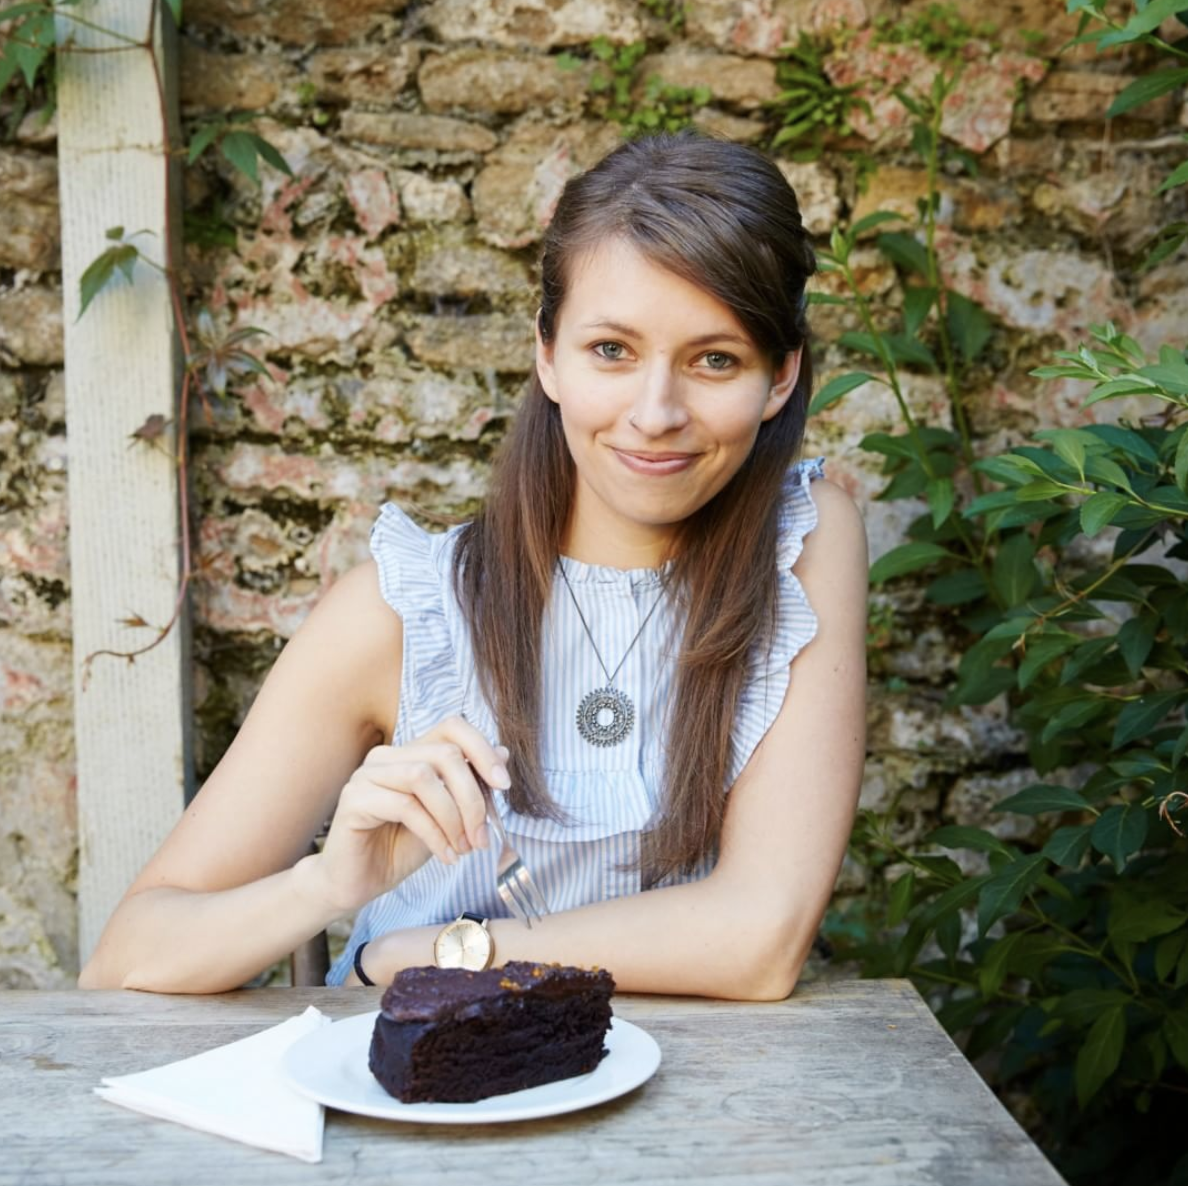 Milda Elena - Nutritional Coach   nutritionpath.co.ukWENT FROM STRUGGLING IN HER BIZ, TO:✨Booking 13 Discovery Sessions in one month alone. (!!)✨Selling her most expensive package EVER.✨Getting quality clients she LOVES working with, who are committed and eager to learn.✨Transforming her money mindset, and getting the confidence and self-belief to get out there and do it!